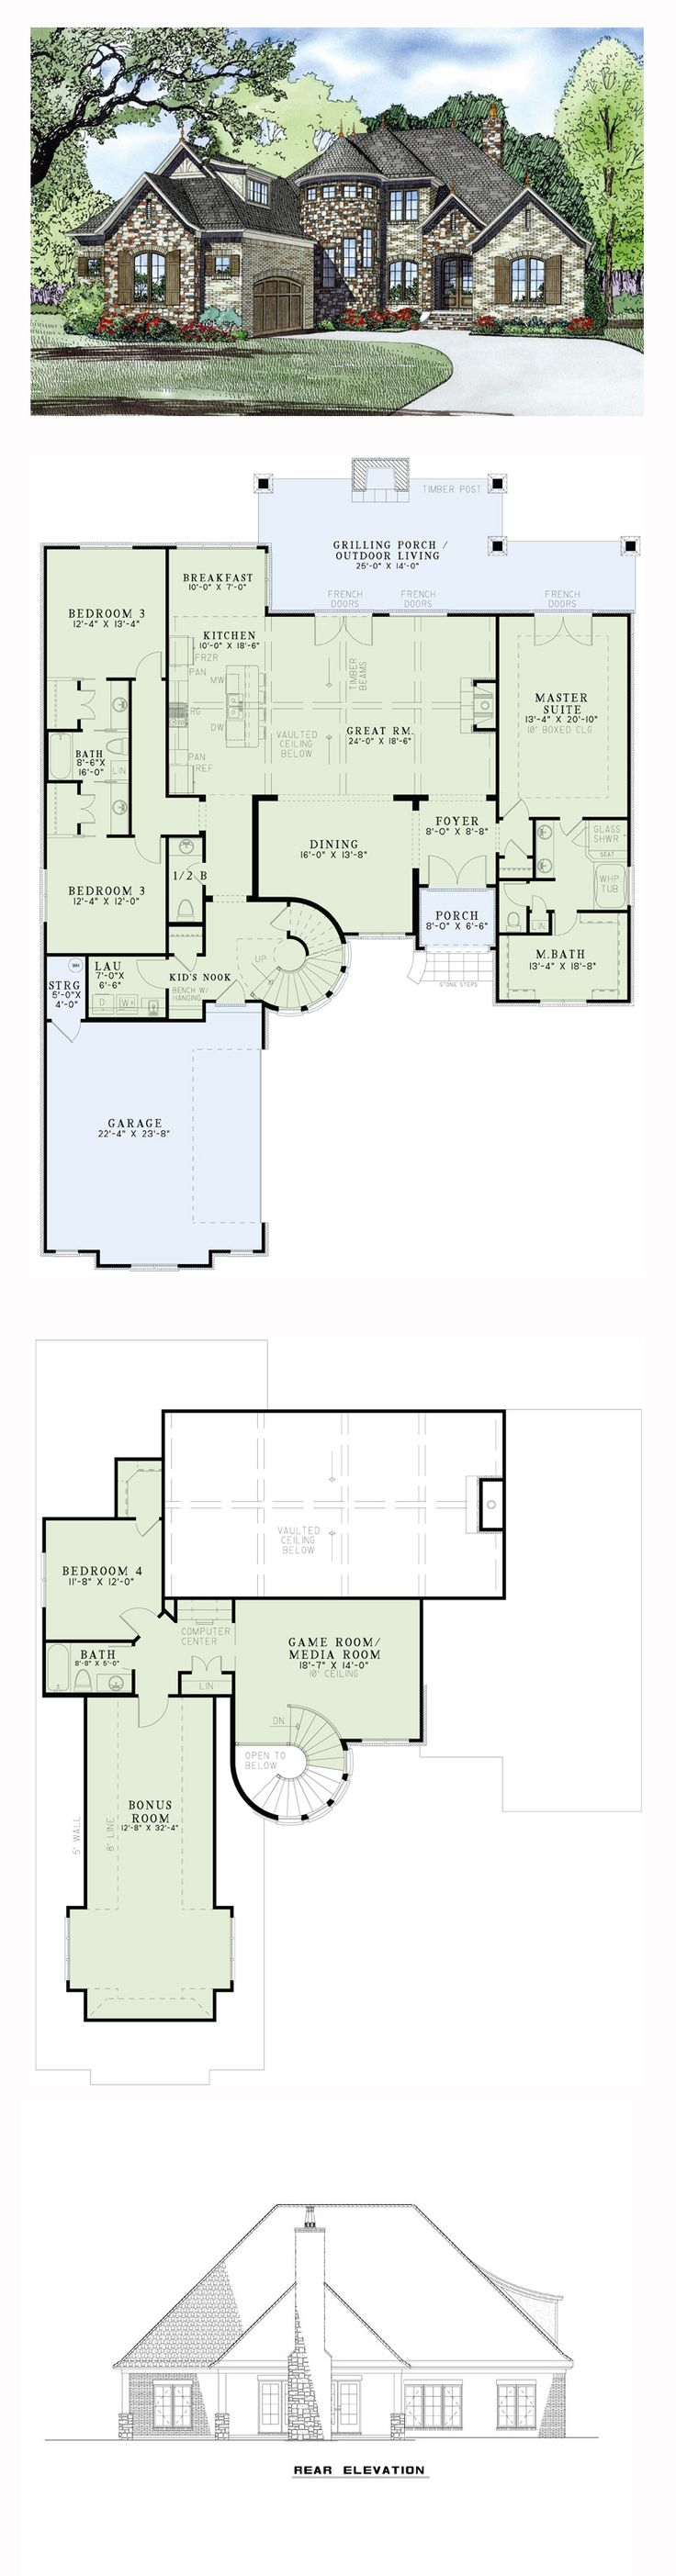 Best 25+ 4 Bedroom House Plans Ideas On Pinterest | House Plans, Country House  Plans And House Floor Plans